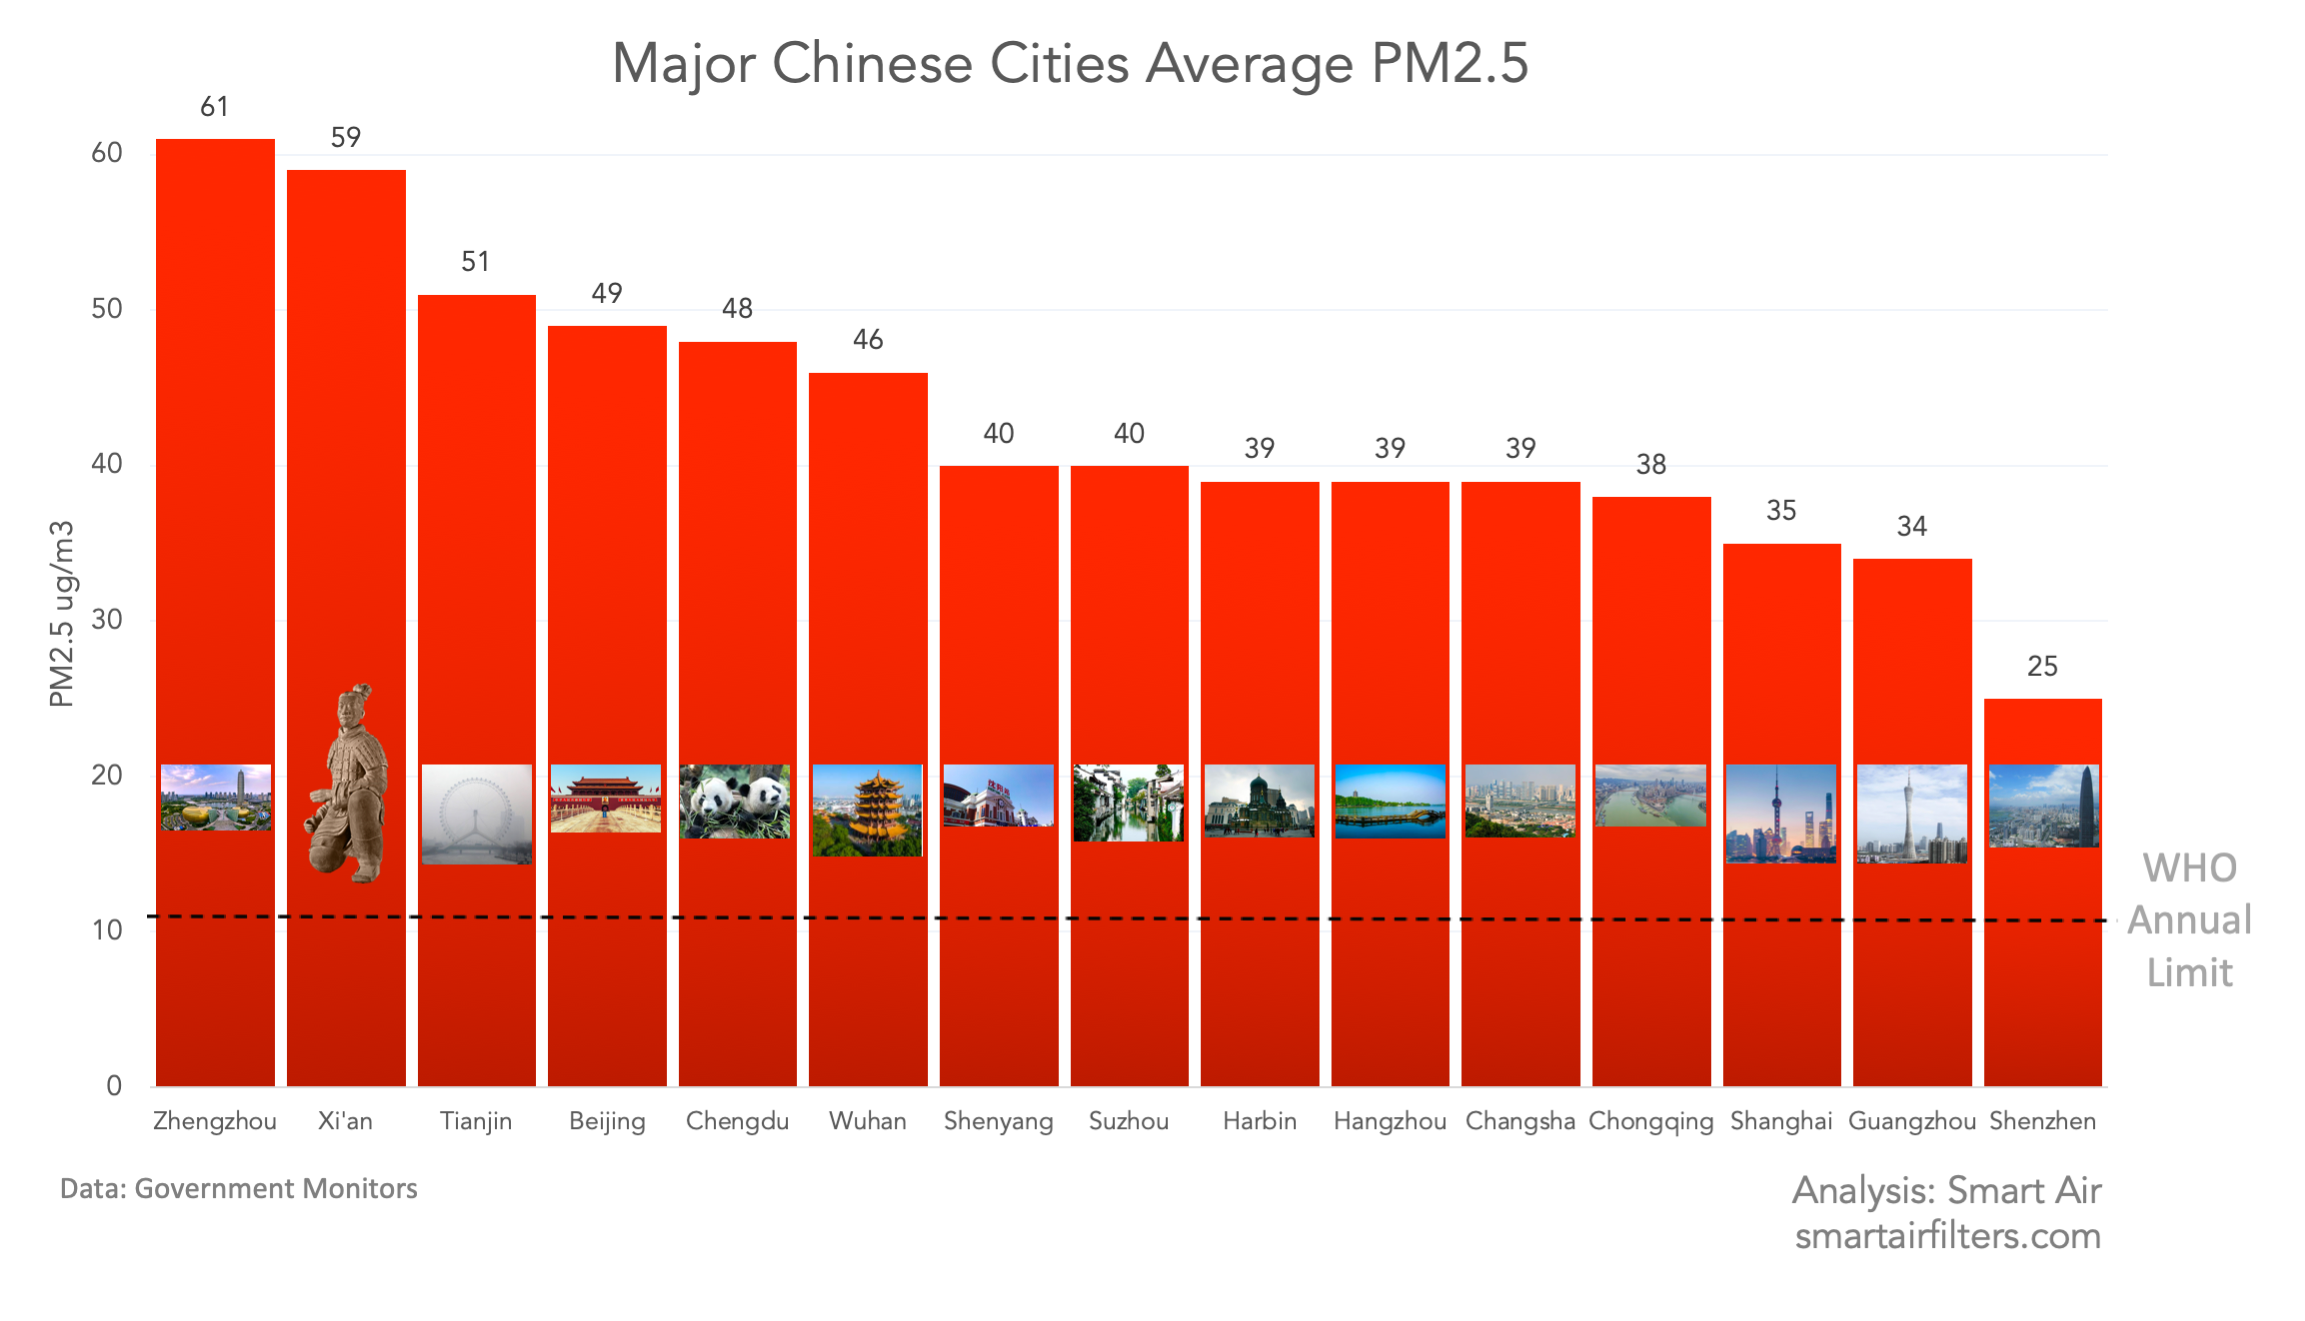 Major Chinese cities PM2.5